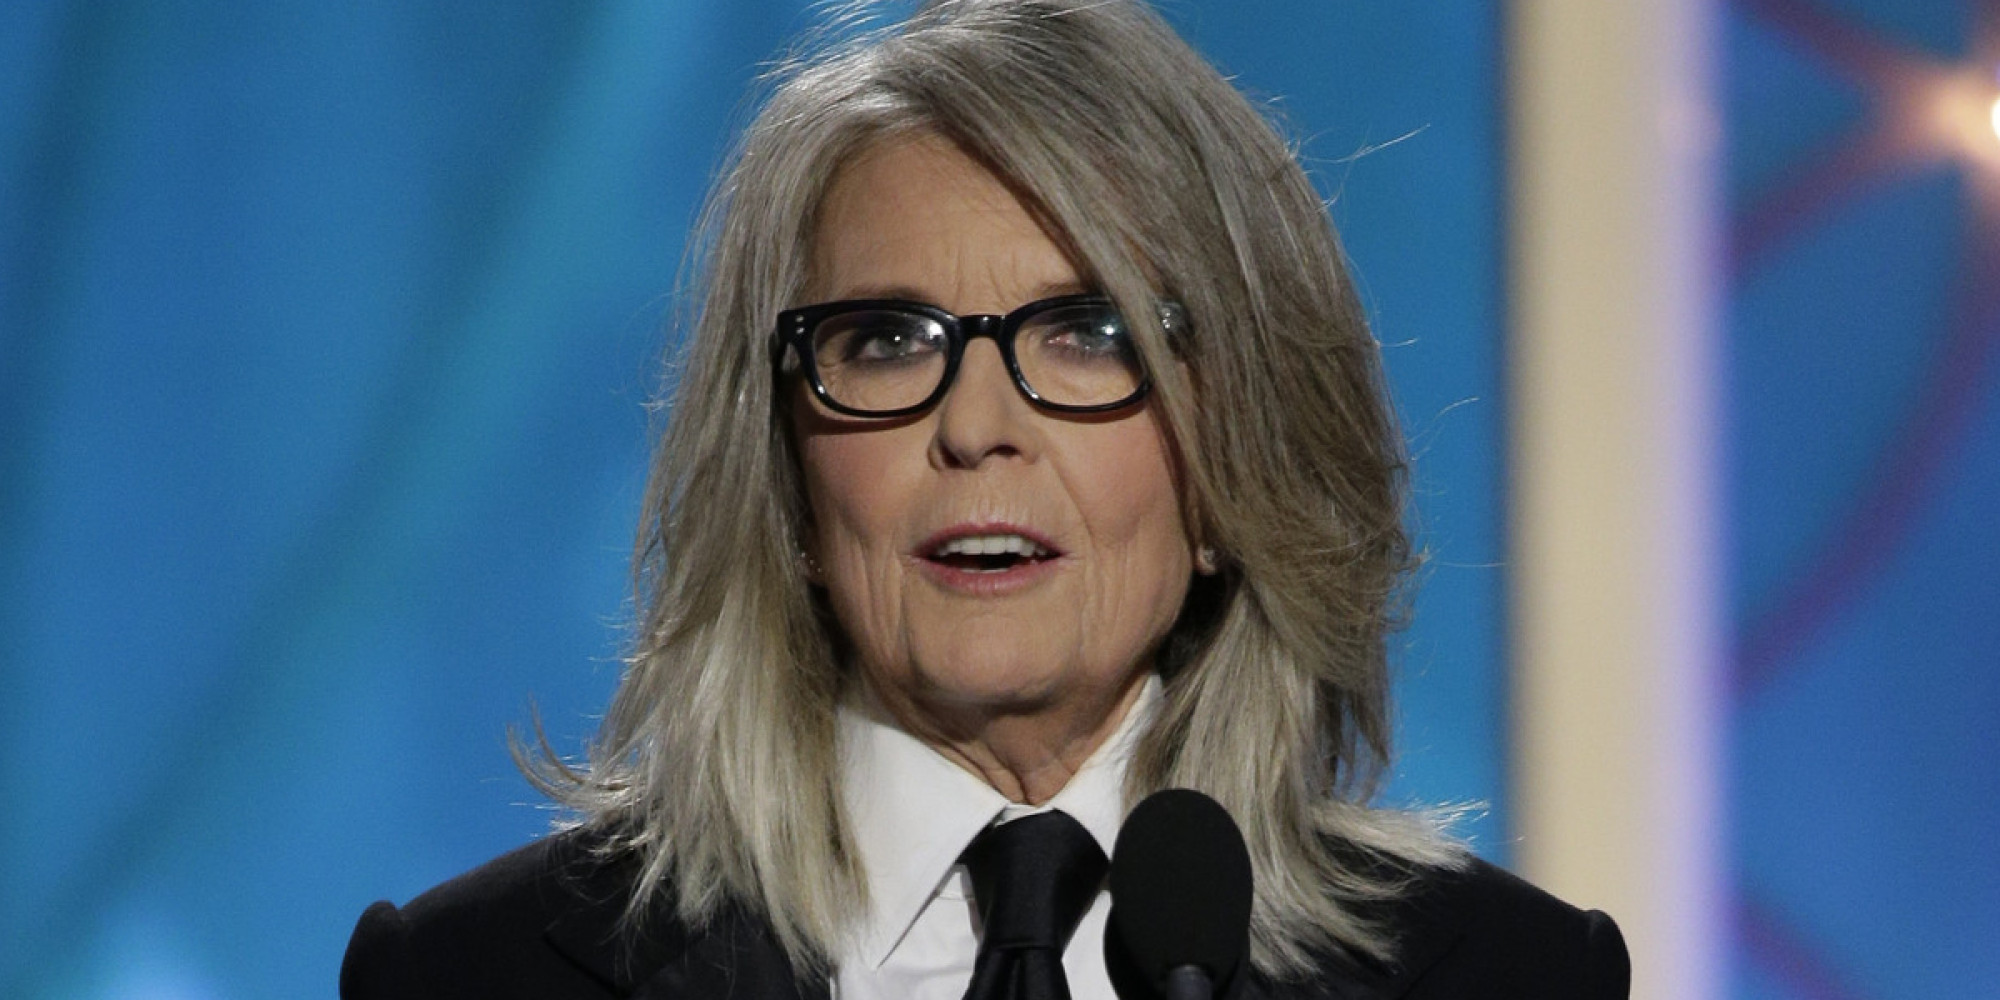 Attending Diane Keaton Hairstyles Can Be A Disaster If You Forget